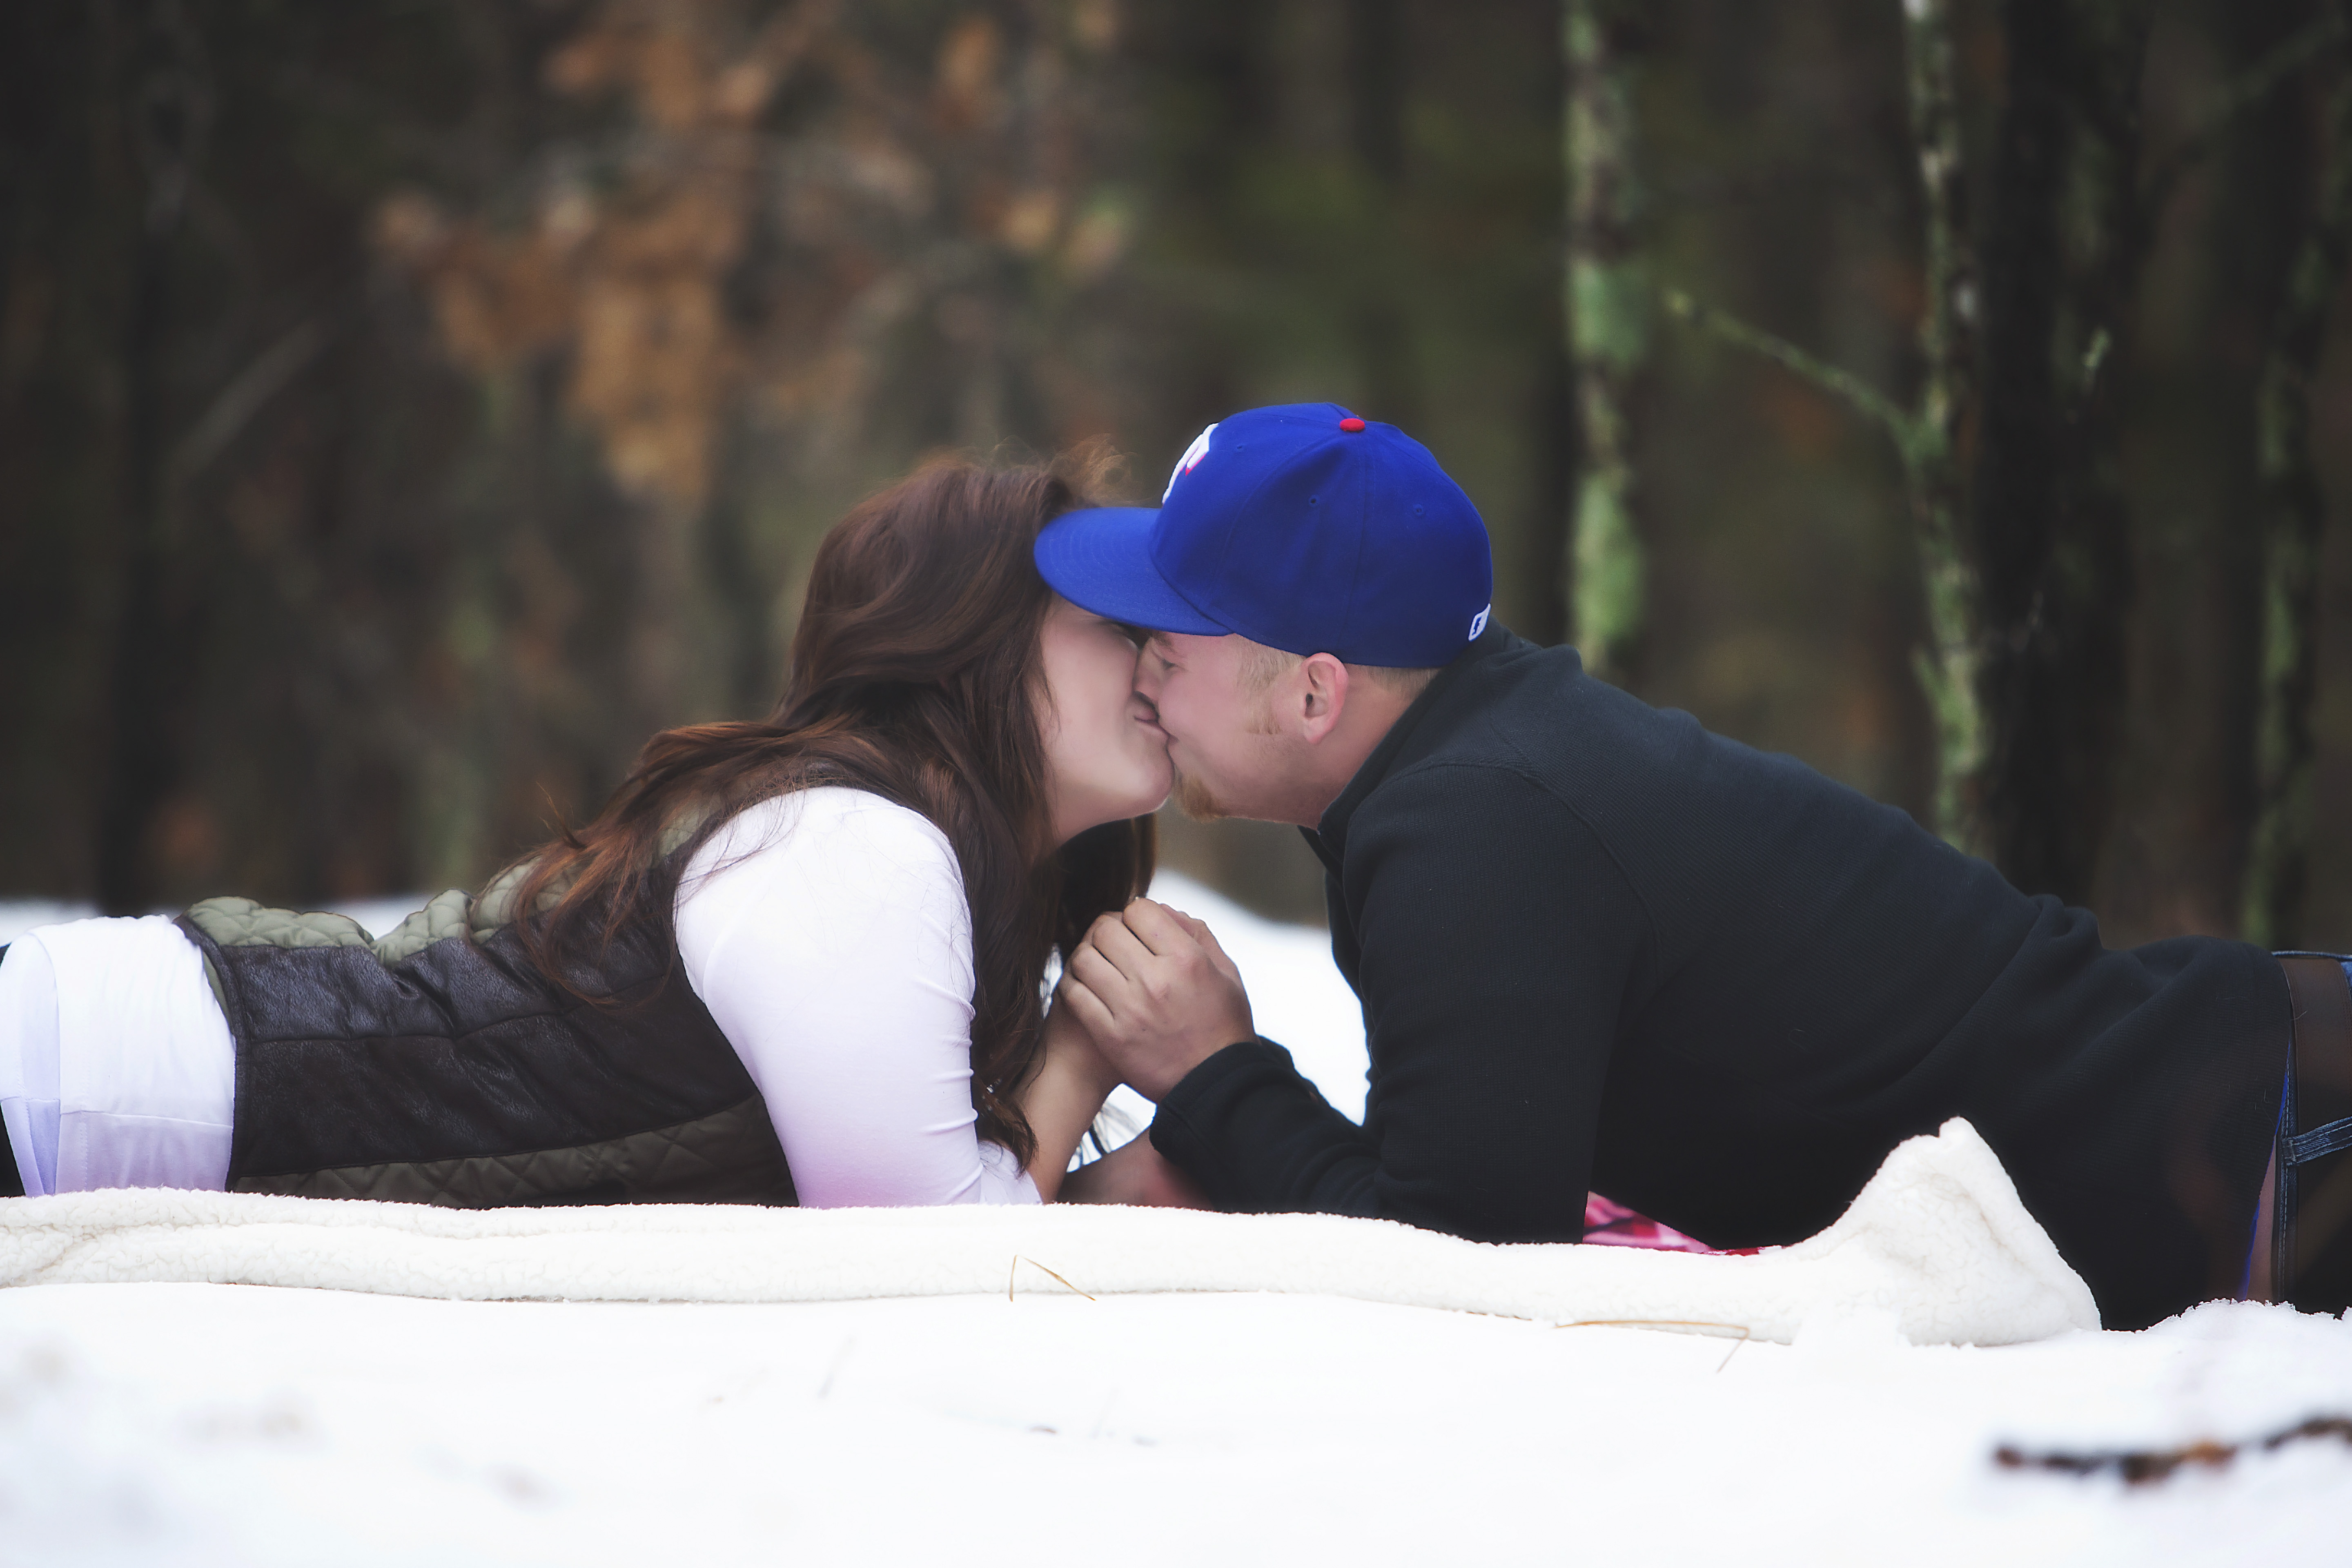 Image 4 of Kristen and Justin